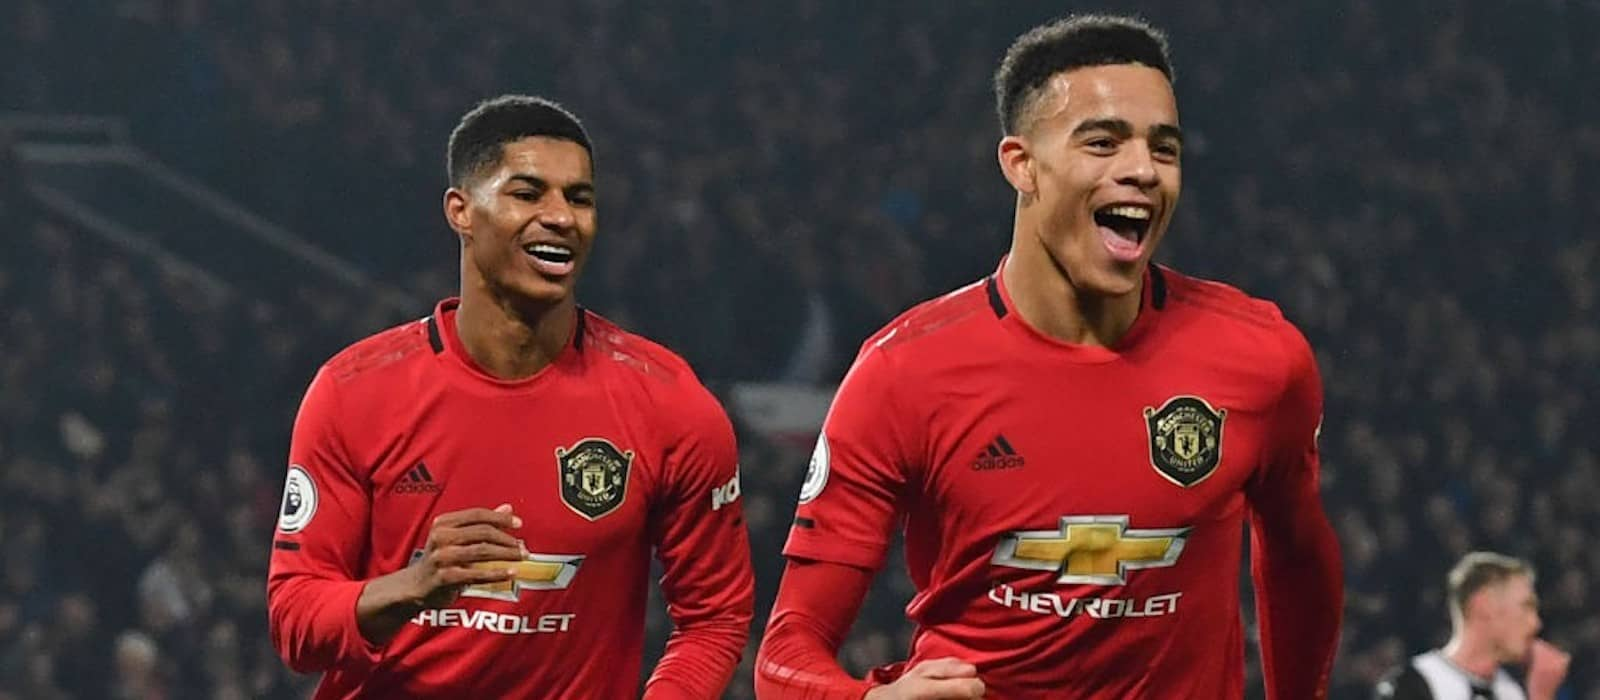 Manchester United have more homegrown players than any club in Europe